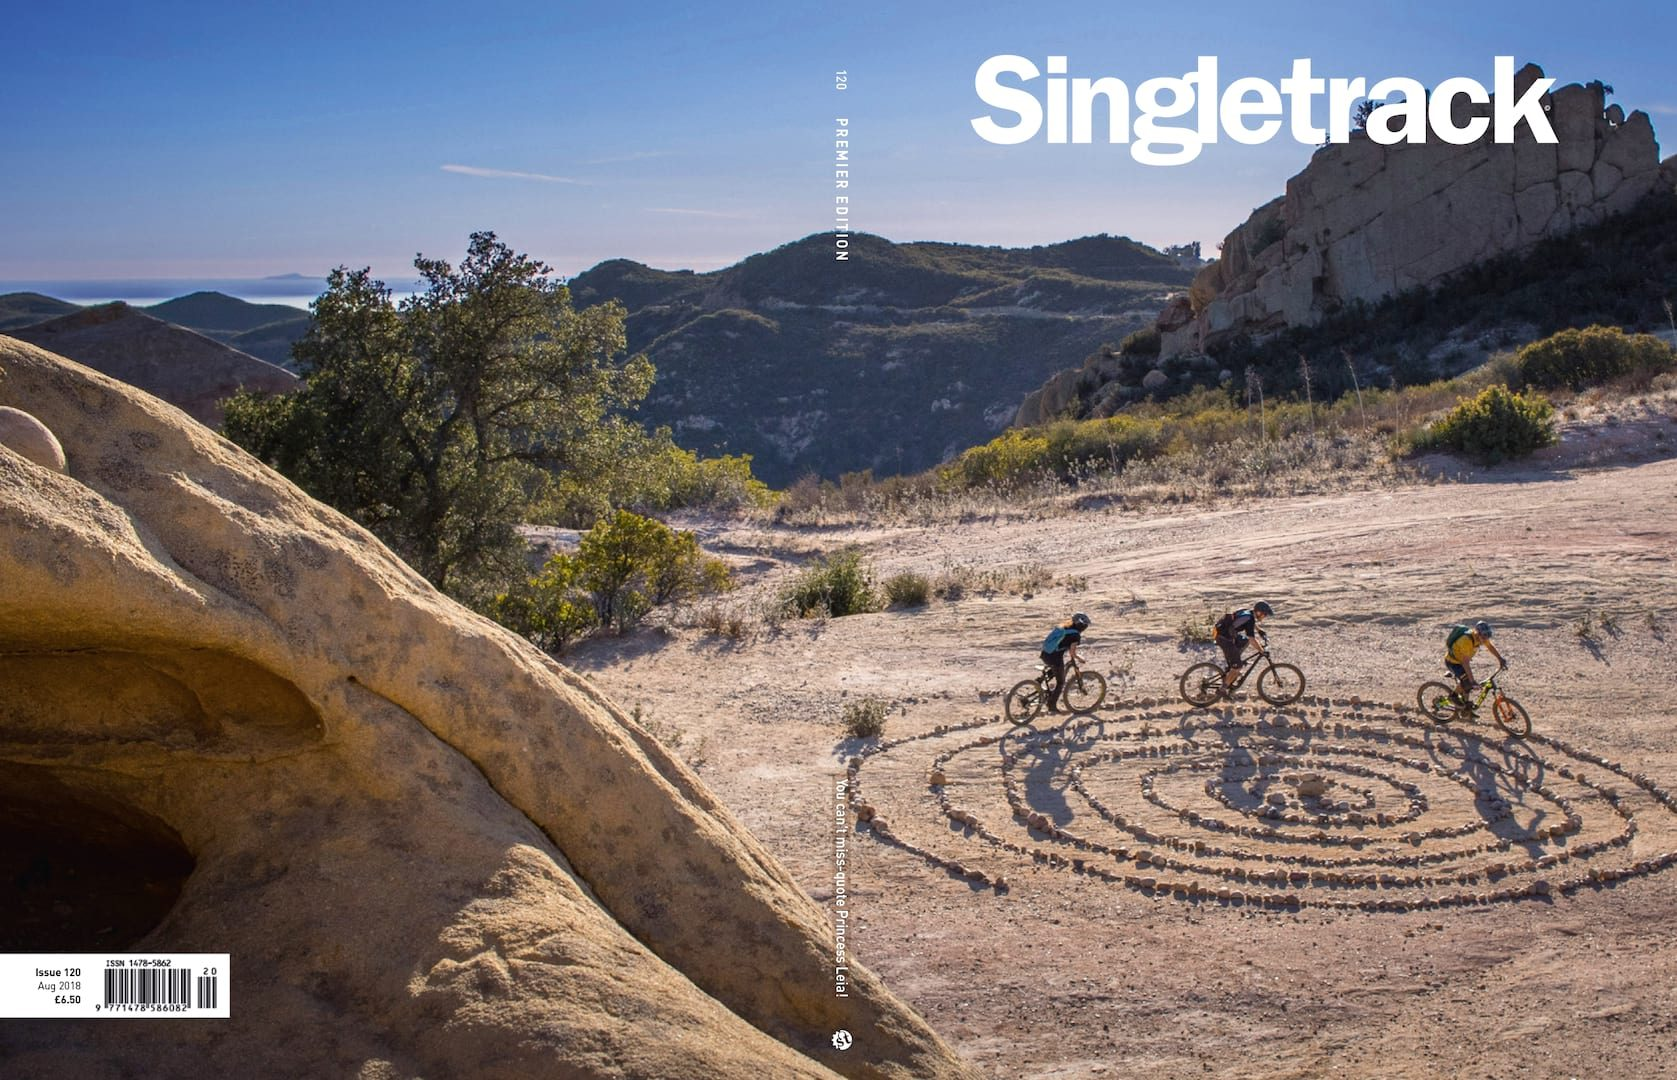 singletrack magazine issue 120 cover